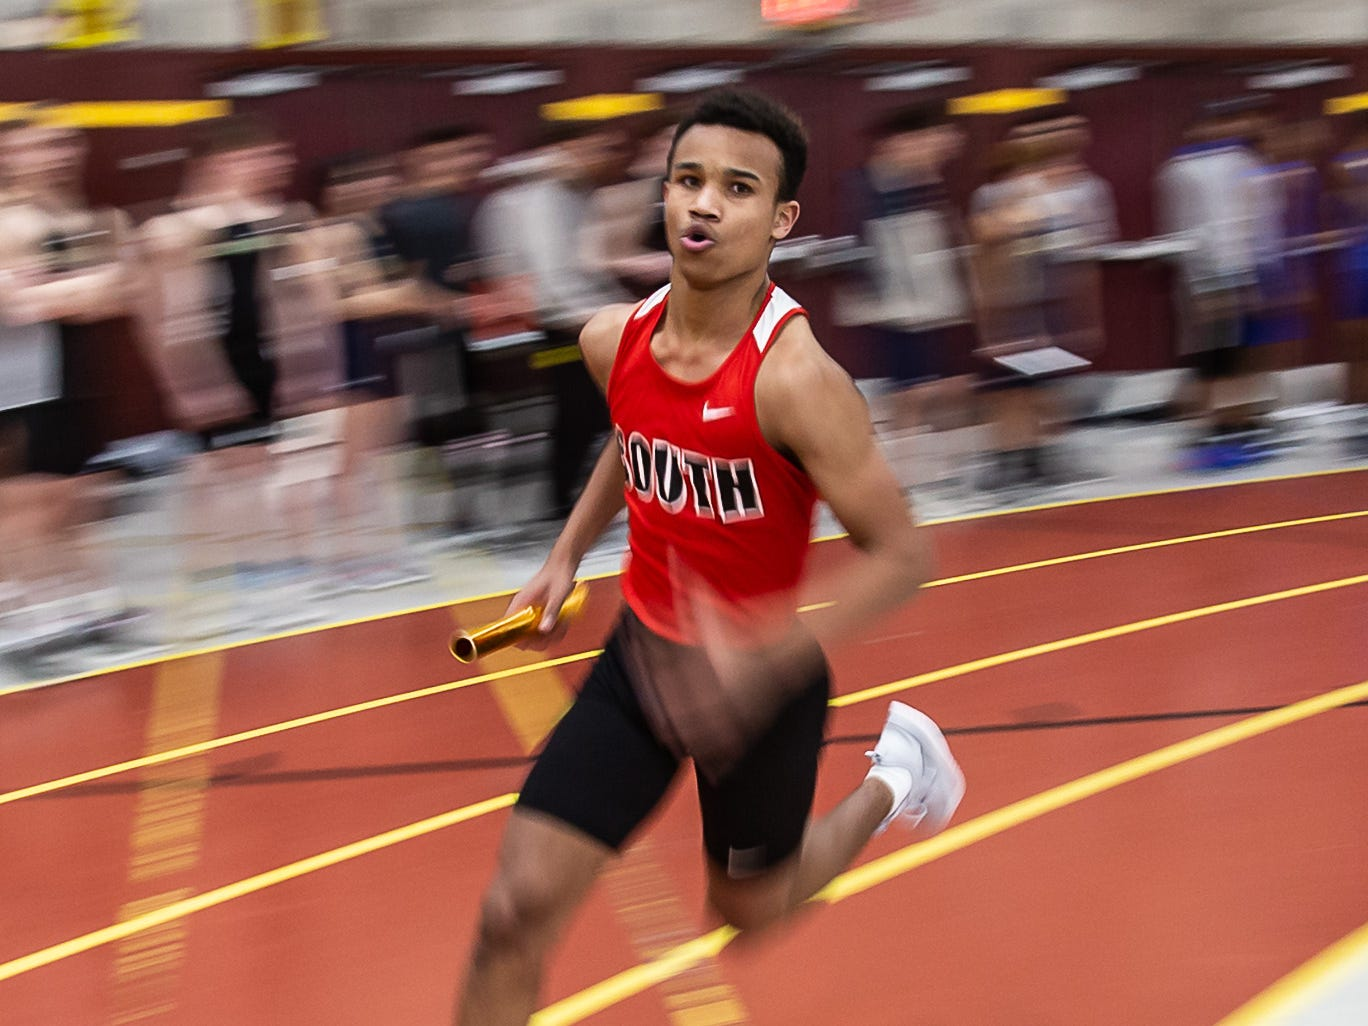 Waukesha South's Giancarlo Williams competes in the 4x240 meter relay at the Reinhard Bulldog Relays hosted by West Allis Central on Friday, March 15, 2019.